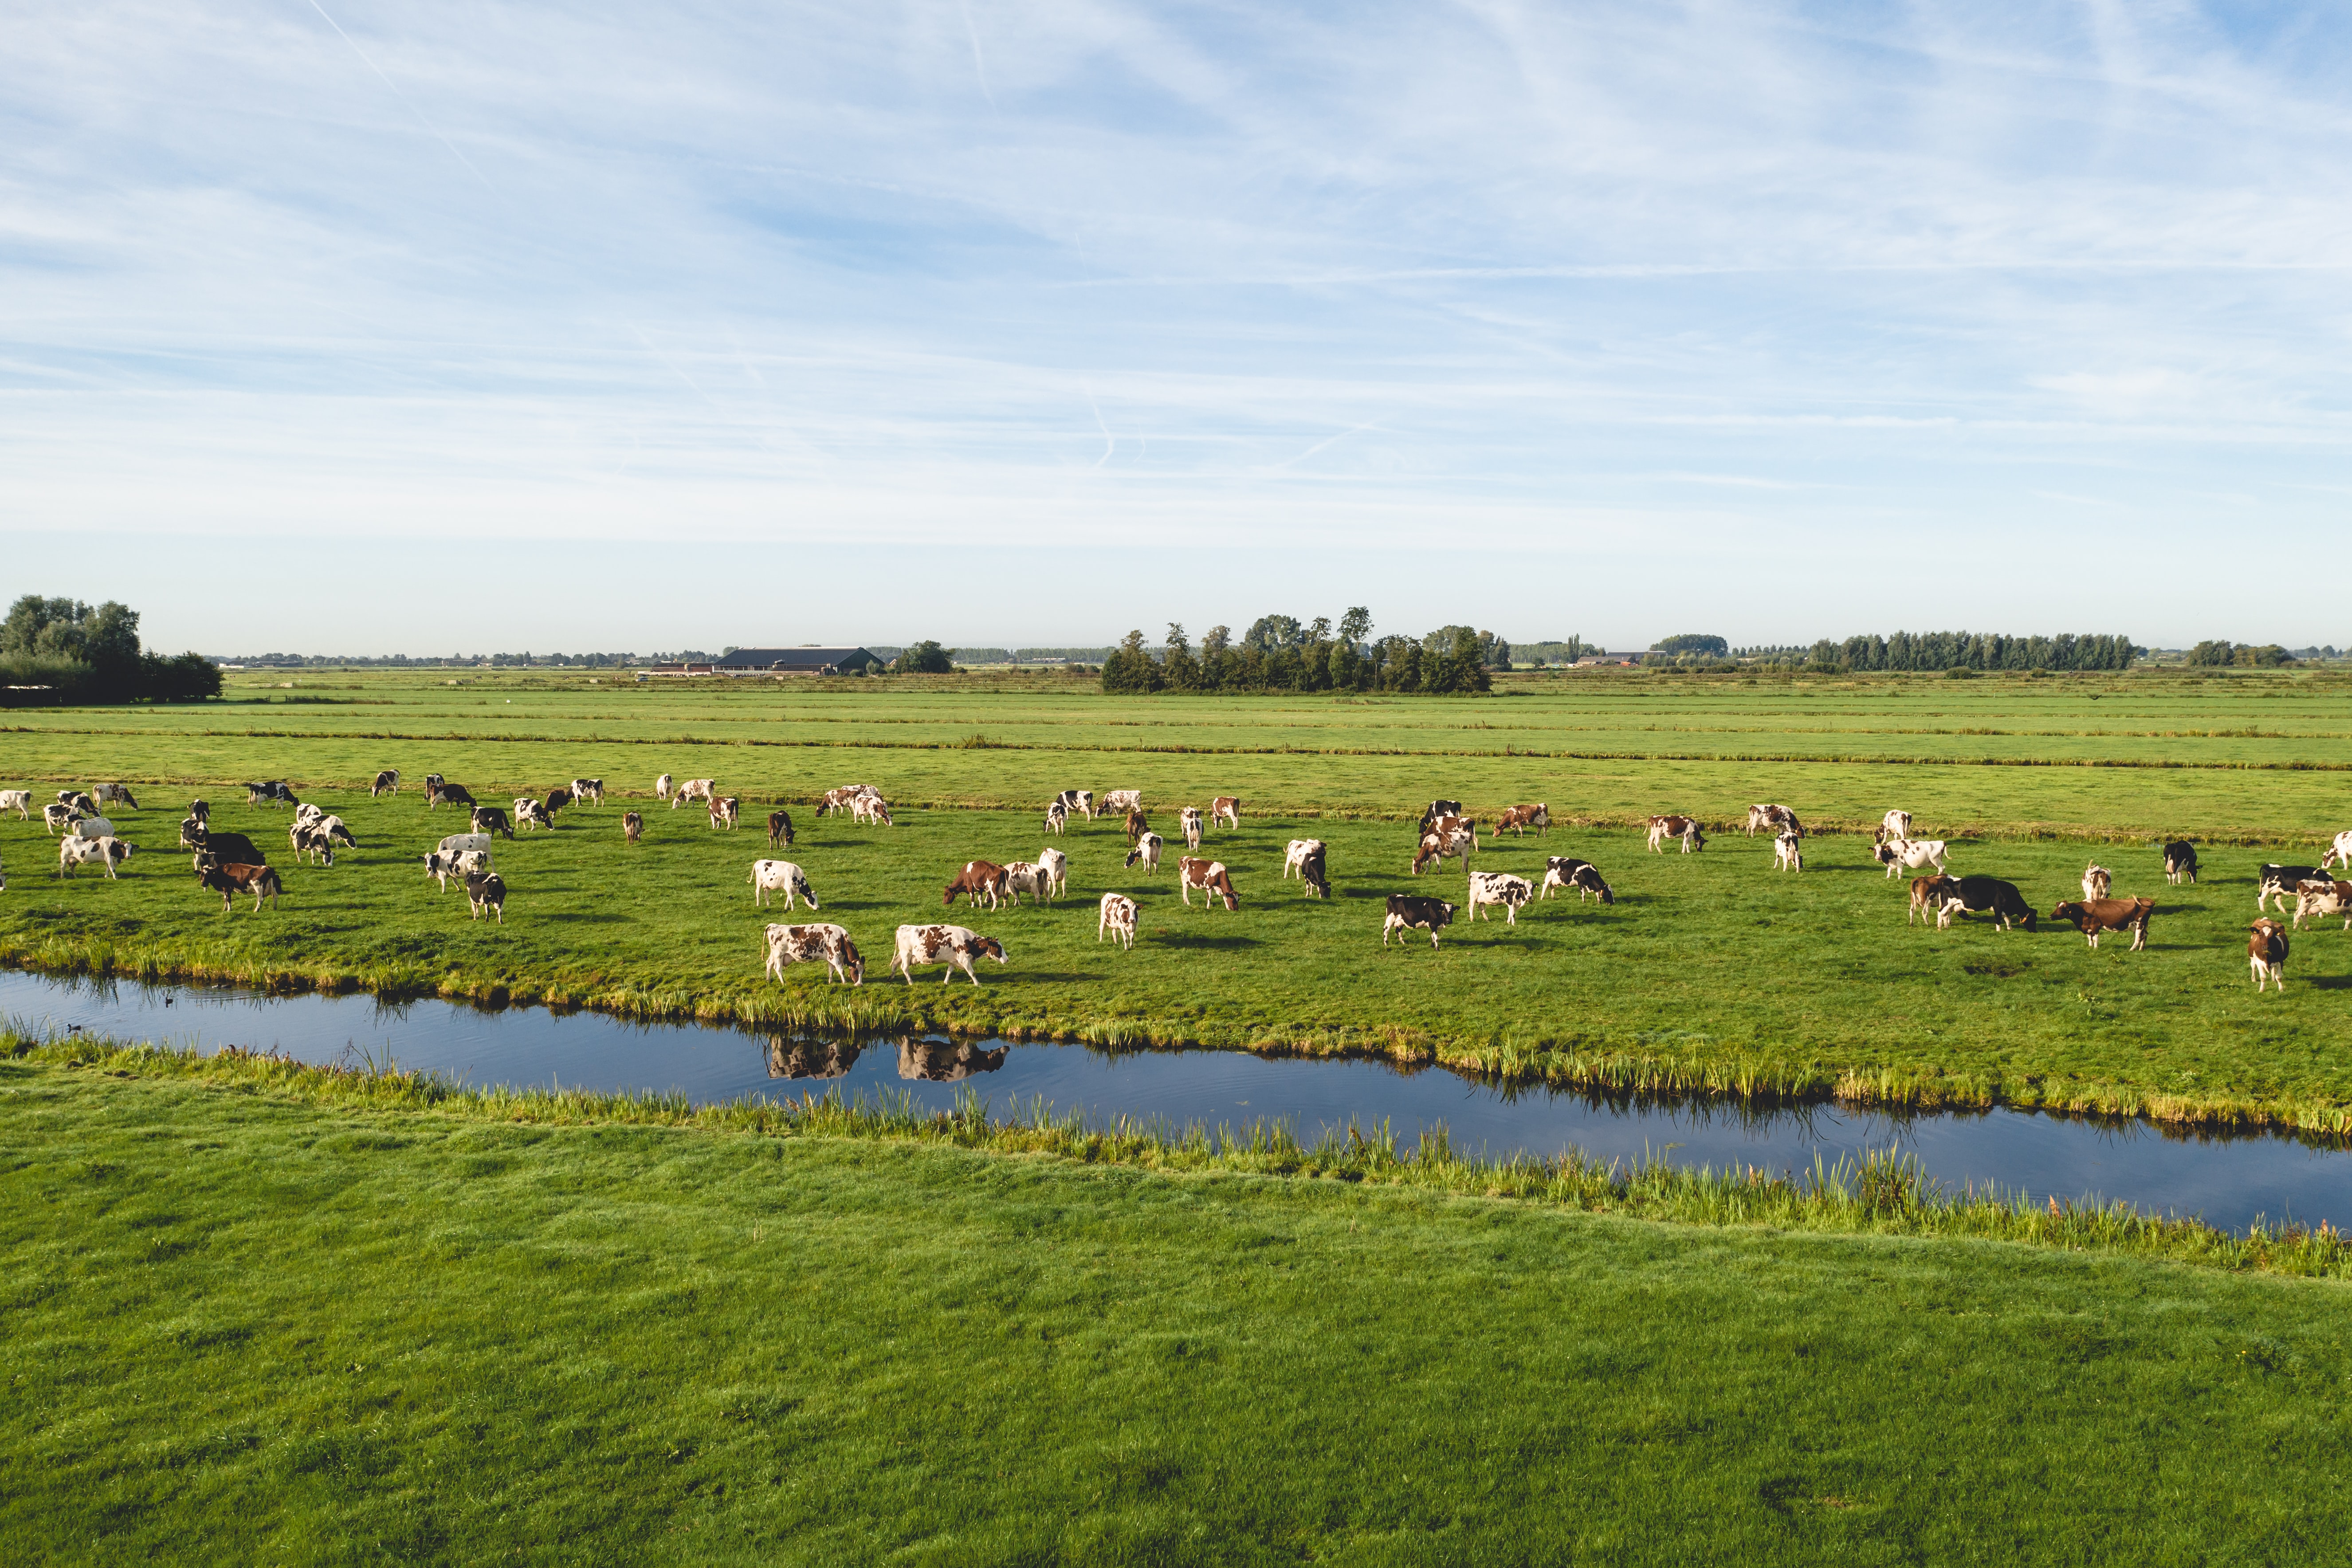 Cattle eating grass on Dutch pasture near canal